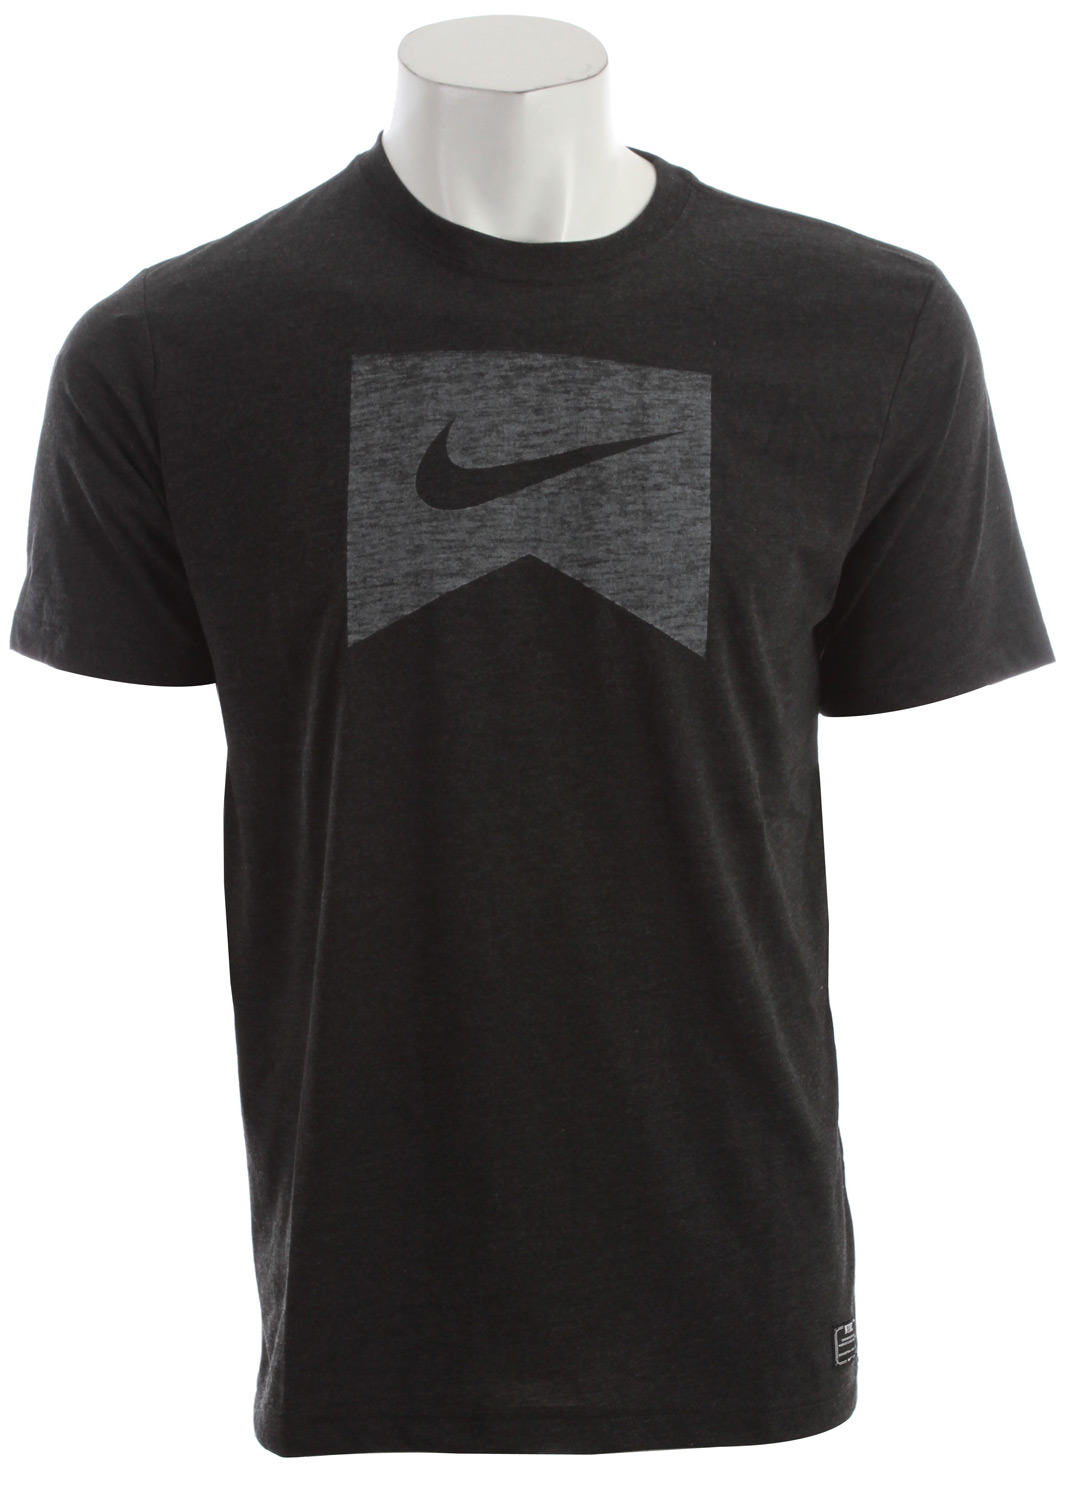 Skateboard Key Features of the Nike Ribbon Logo Dri Fit Blend T-Shirt: Dri-FIT blend tee. Graphic executed with a soft hand screen print. Body: Dri-FIT 130g. 75% polyester (10% recycled)/13% cotton (10% organic)/12% rayon plain jersey. Rib: 215g. 50% polyester/25% cotton (10% organic)/25% rayon rib. - $30.00